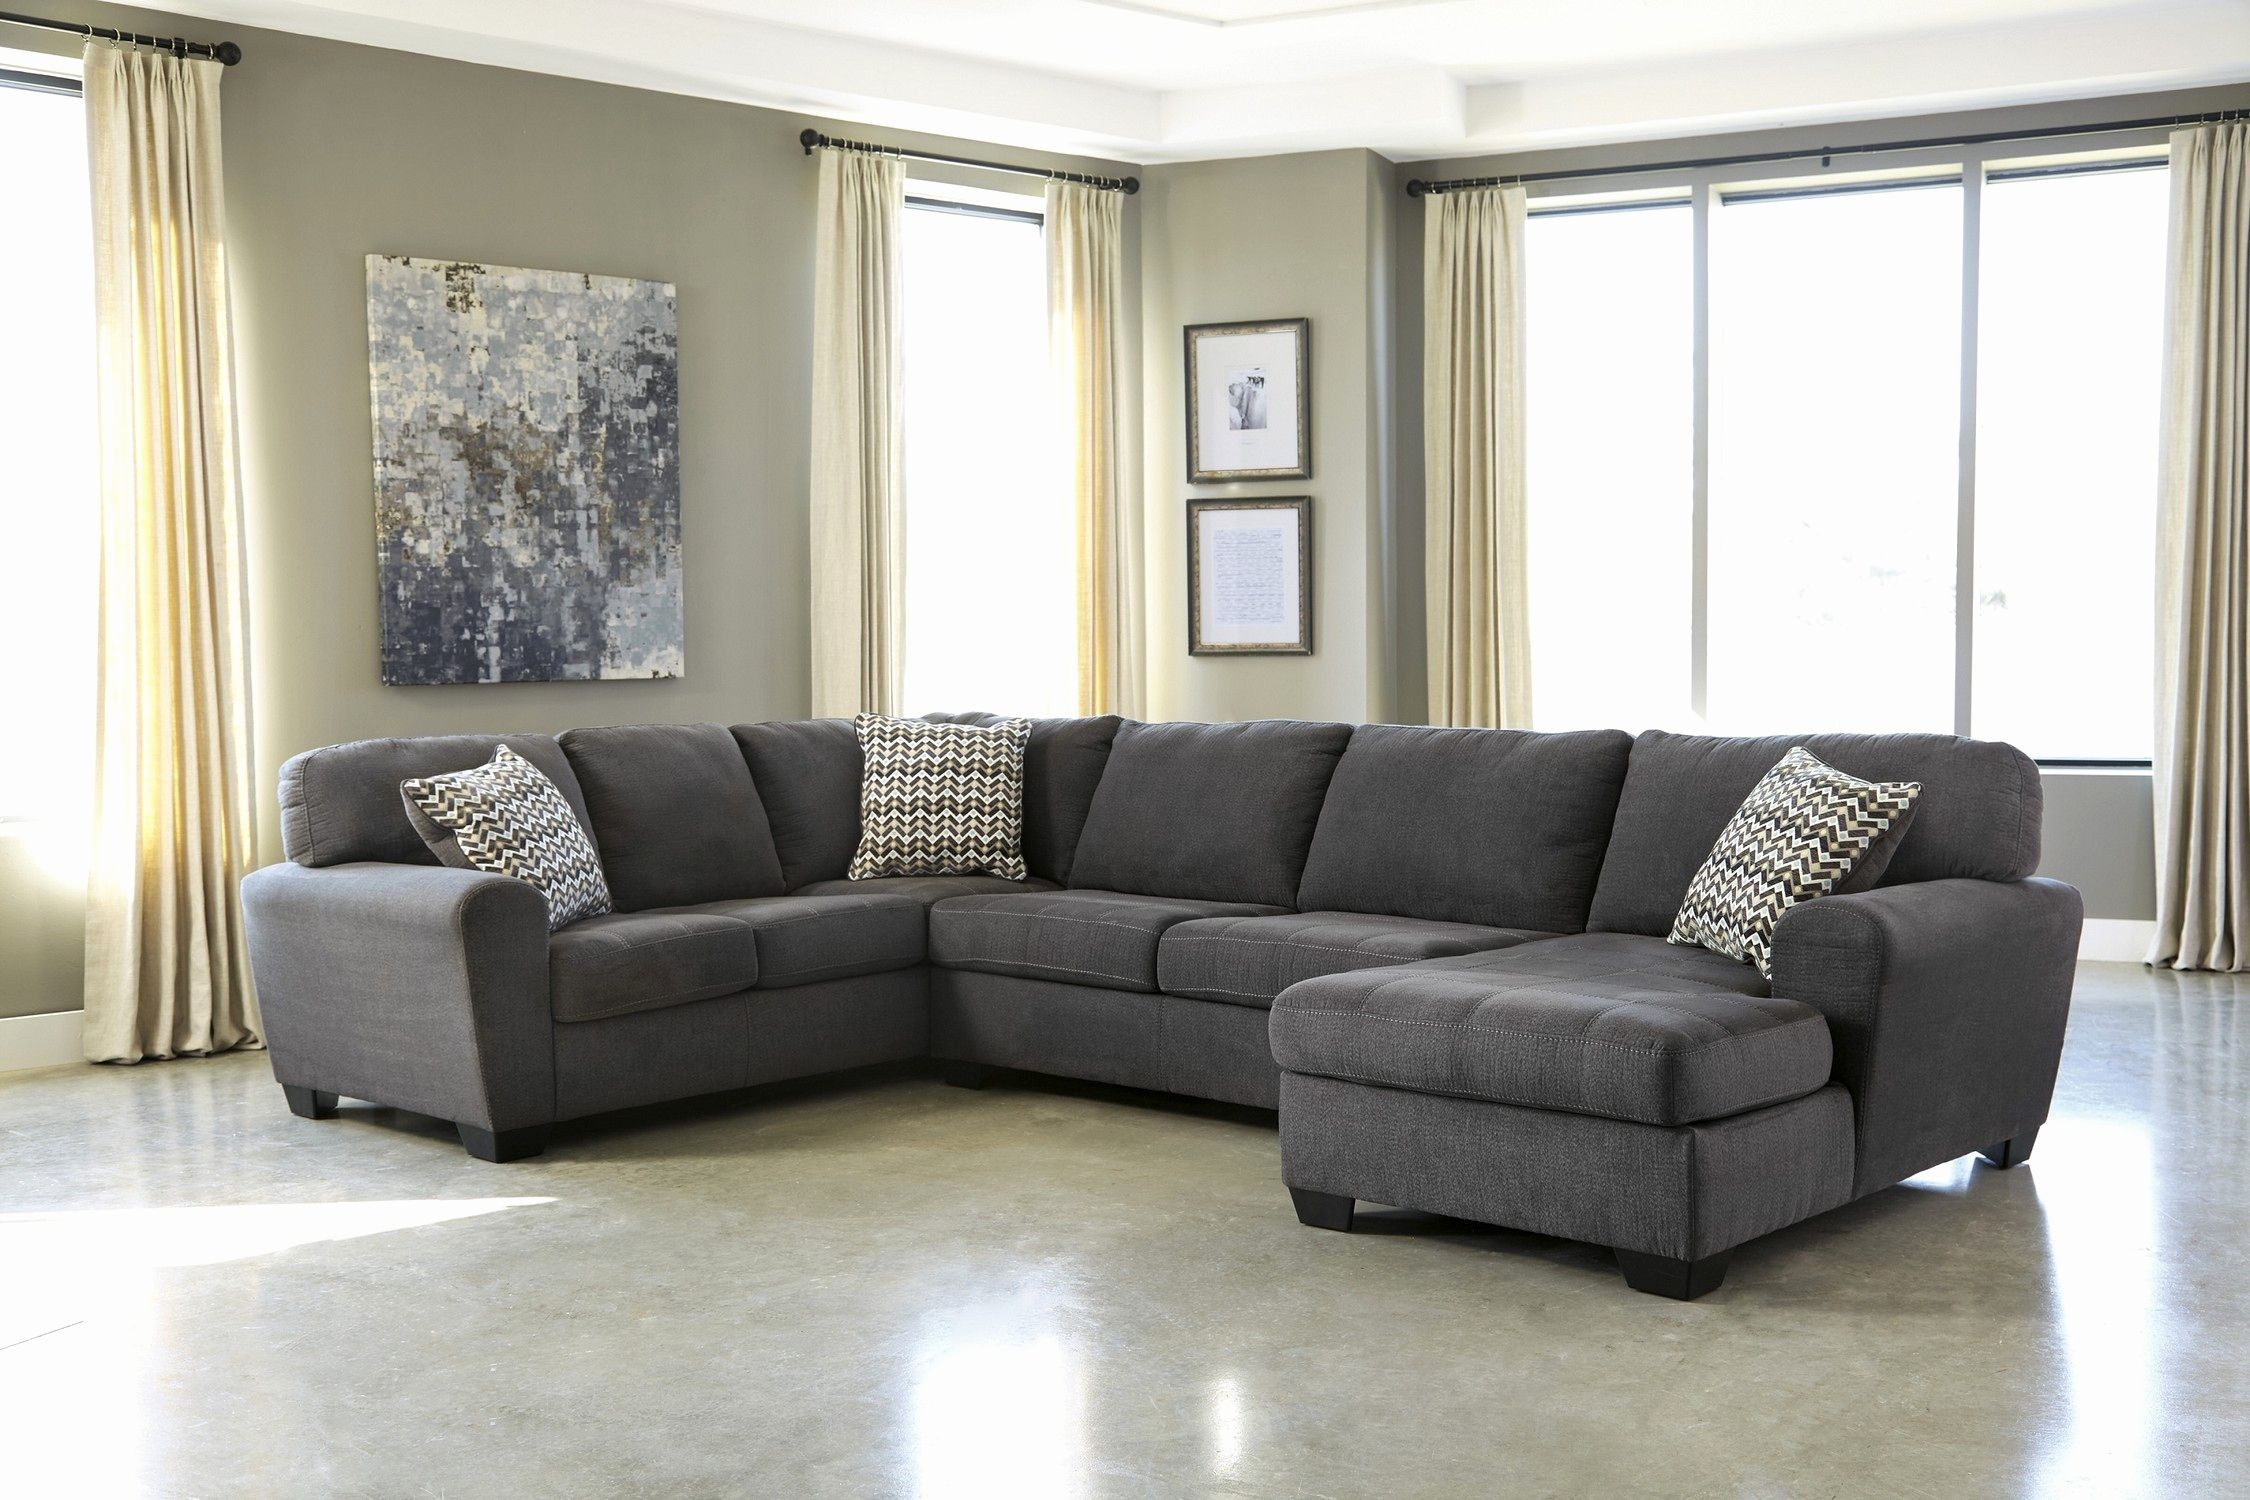 Elegant Charcoal Gray Sectional Sofa Picture